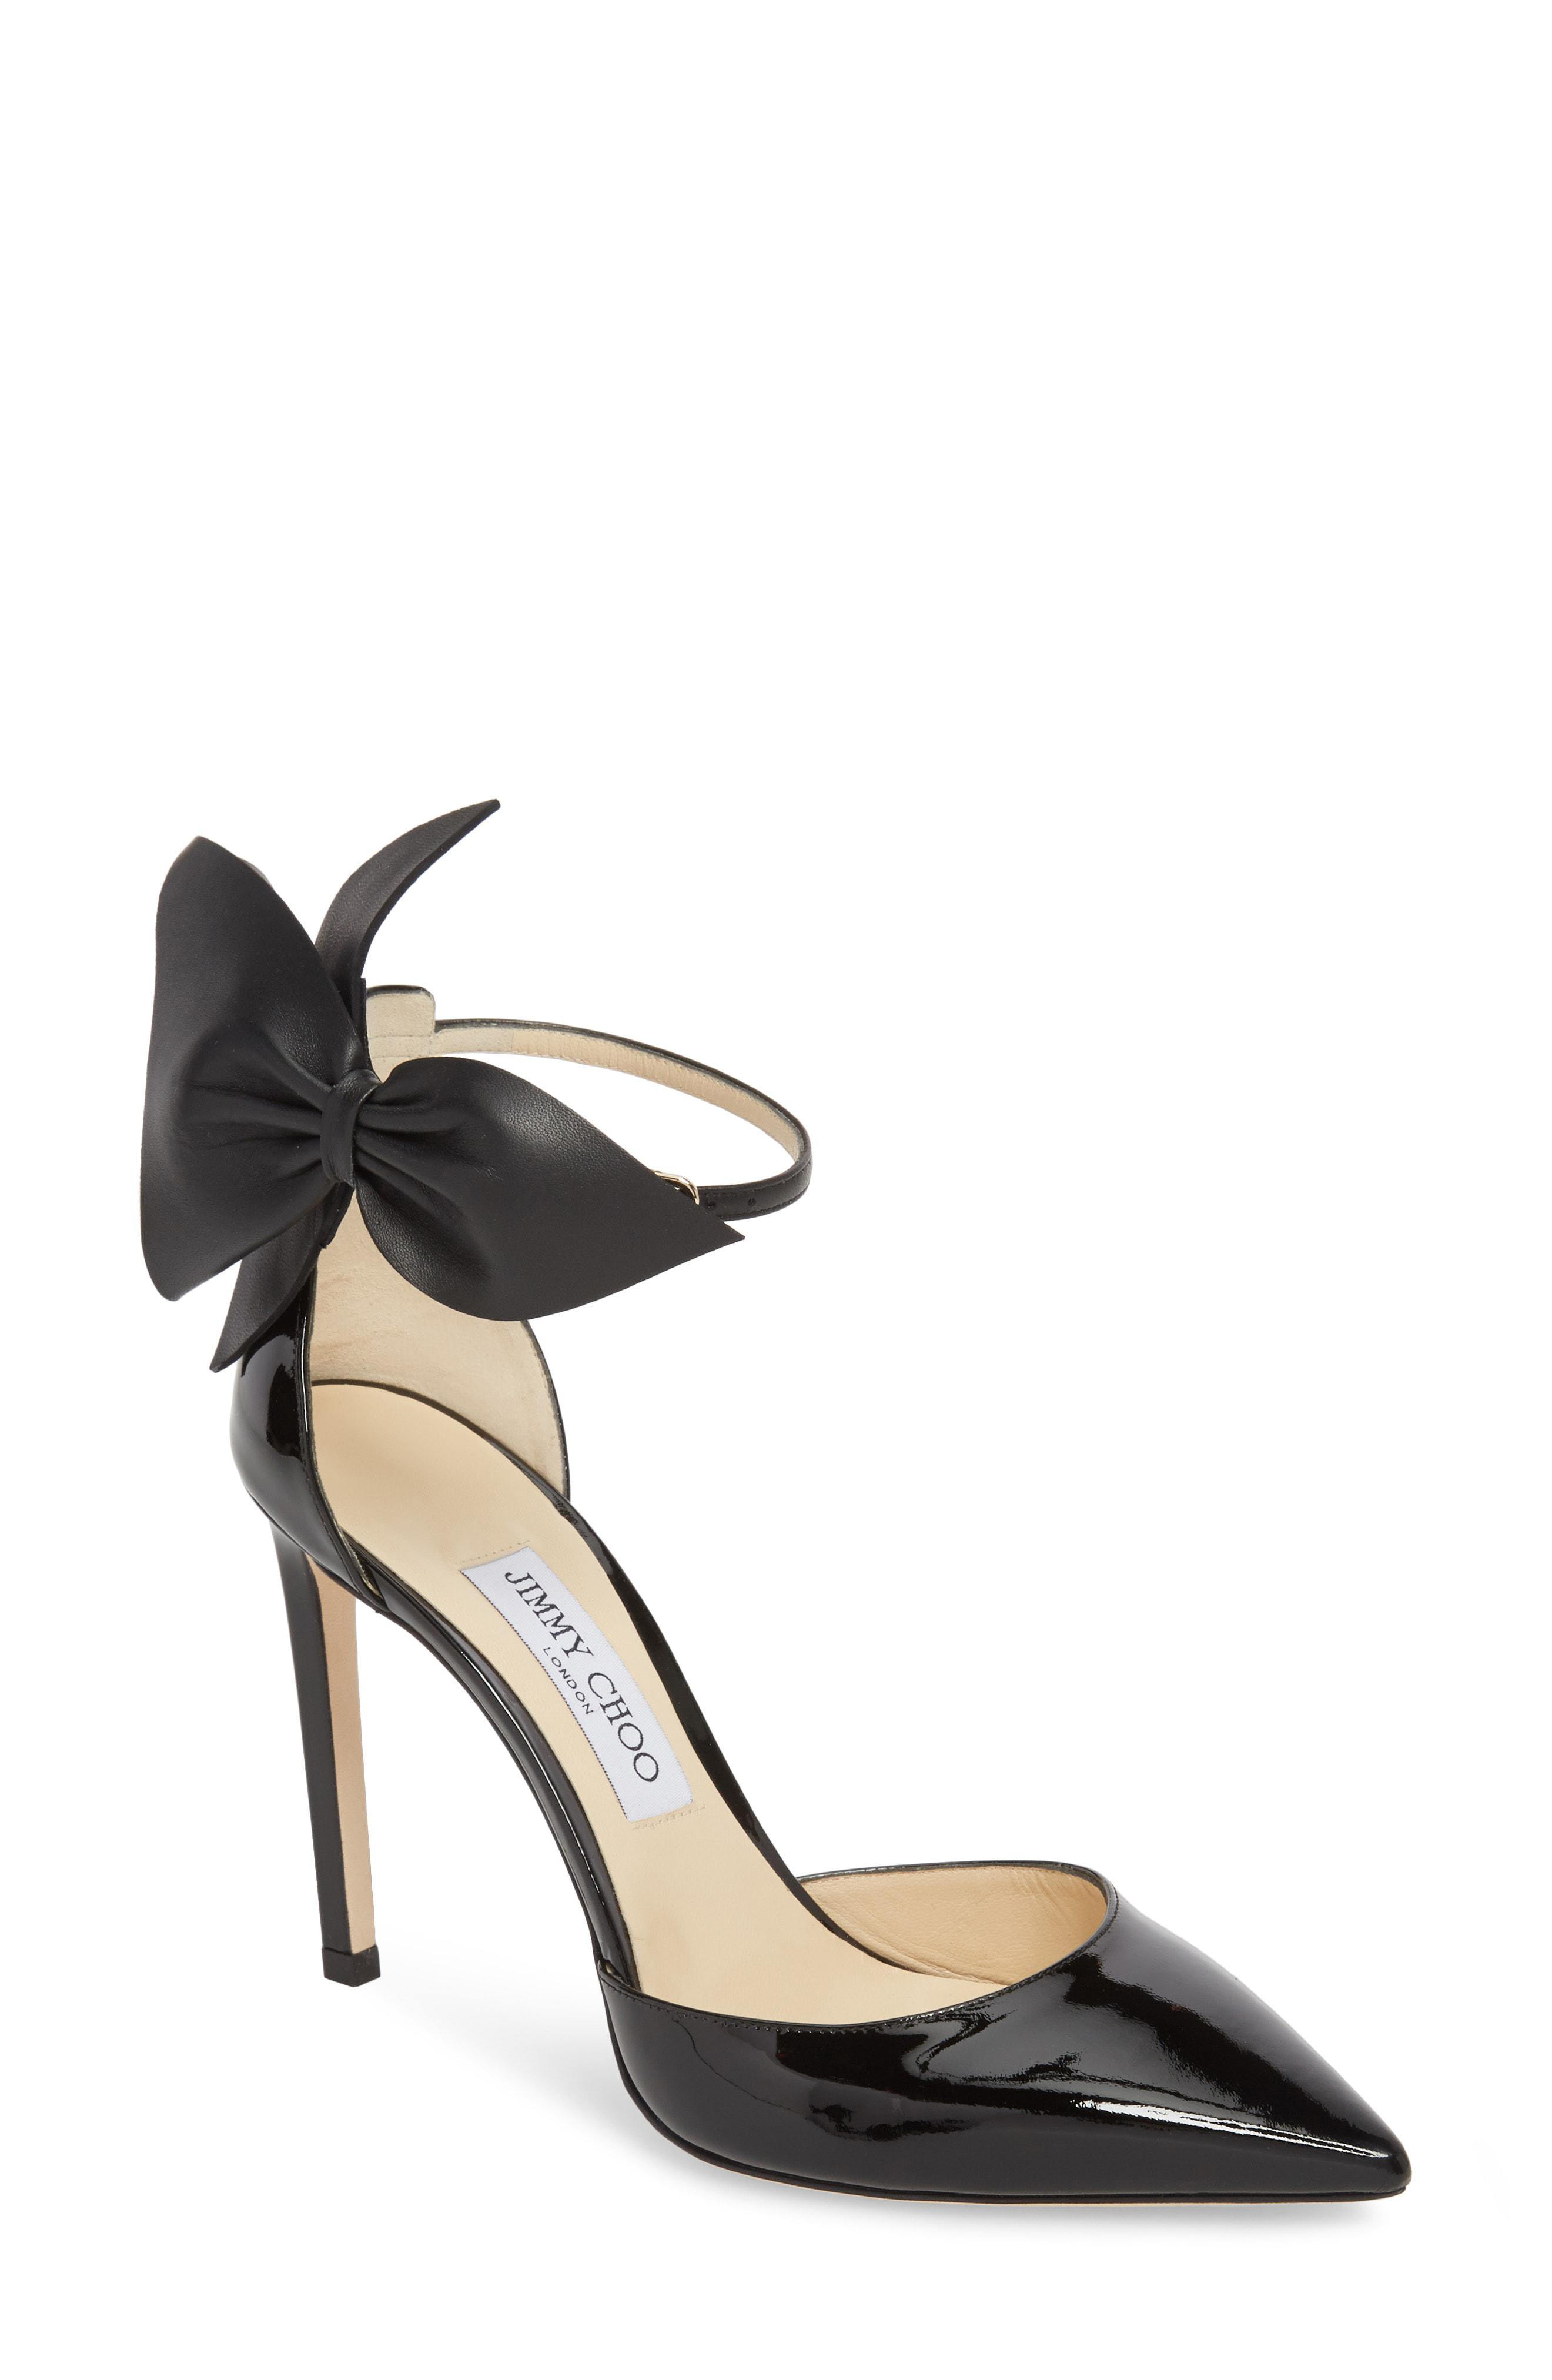 Pump Toe Pointy Bow Jimmy Black Kelley In Choo Lyst vqwZfUO